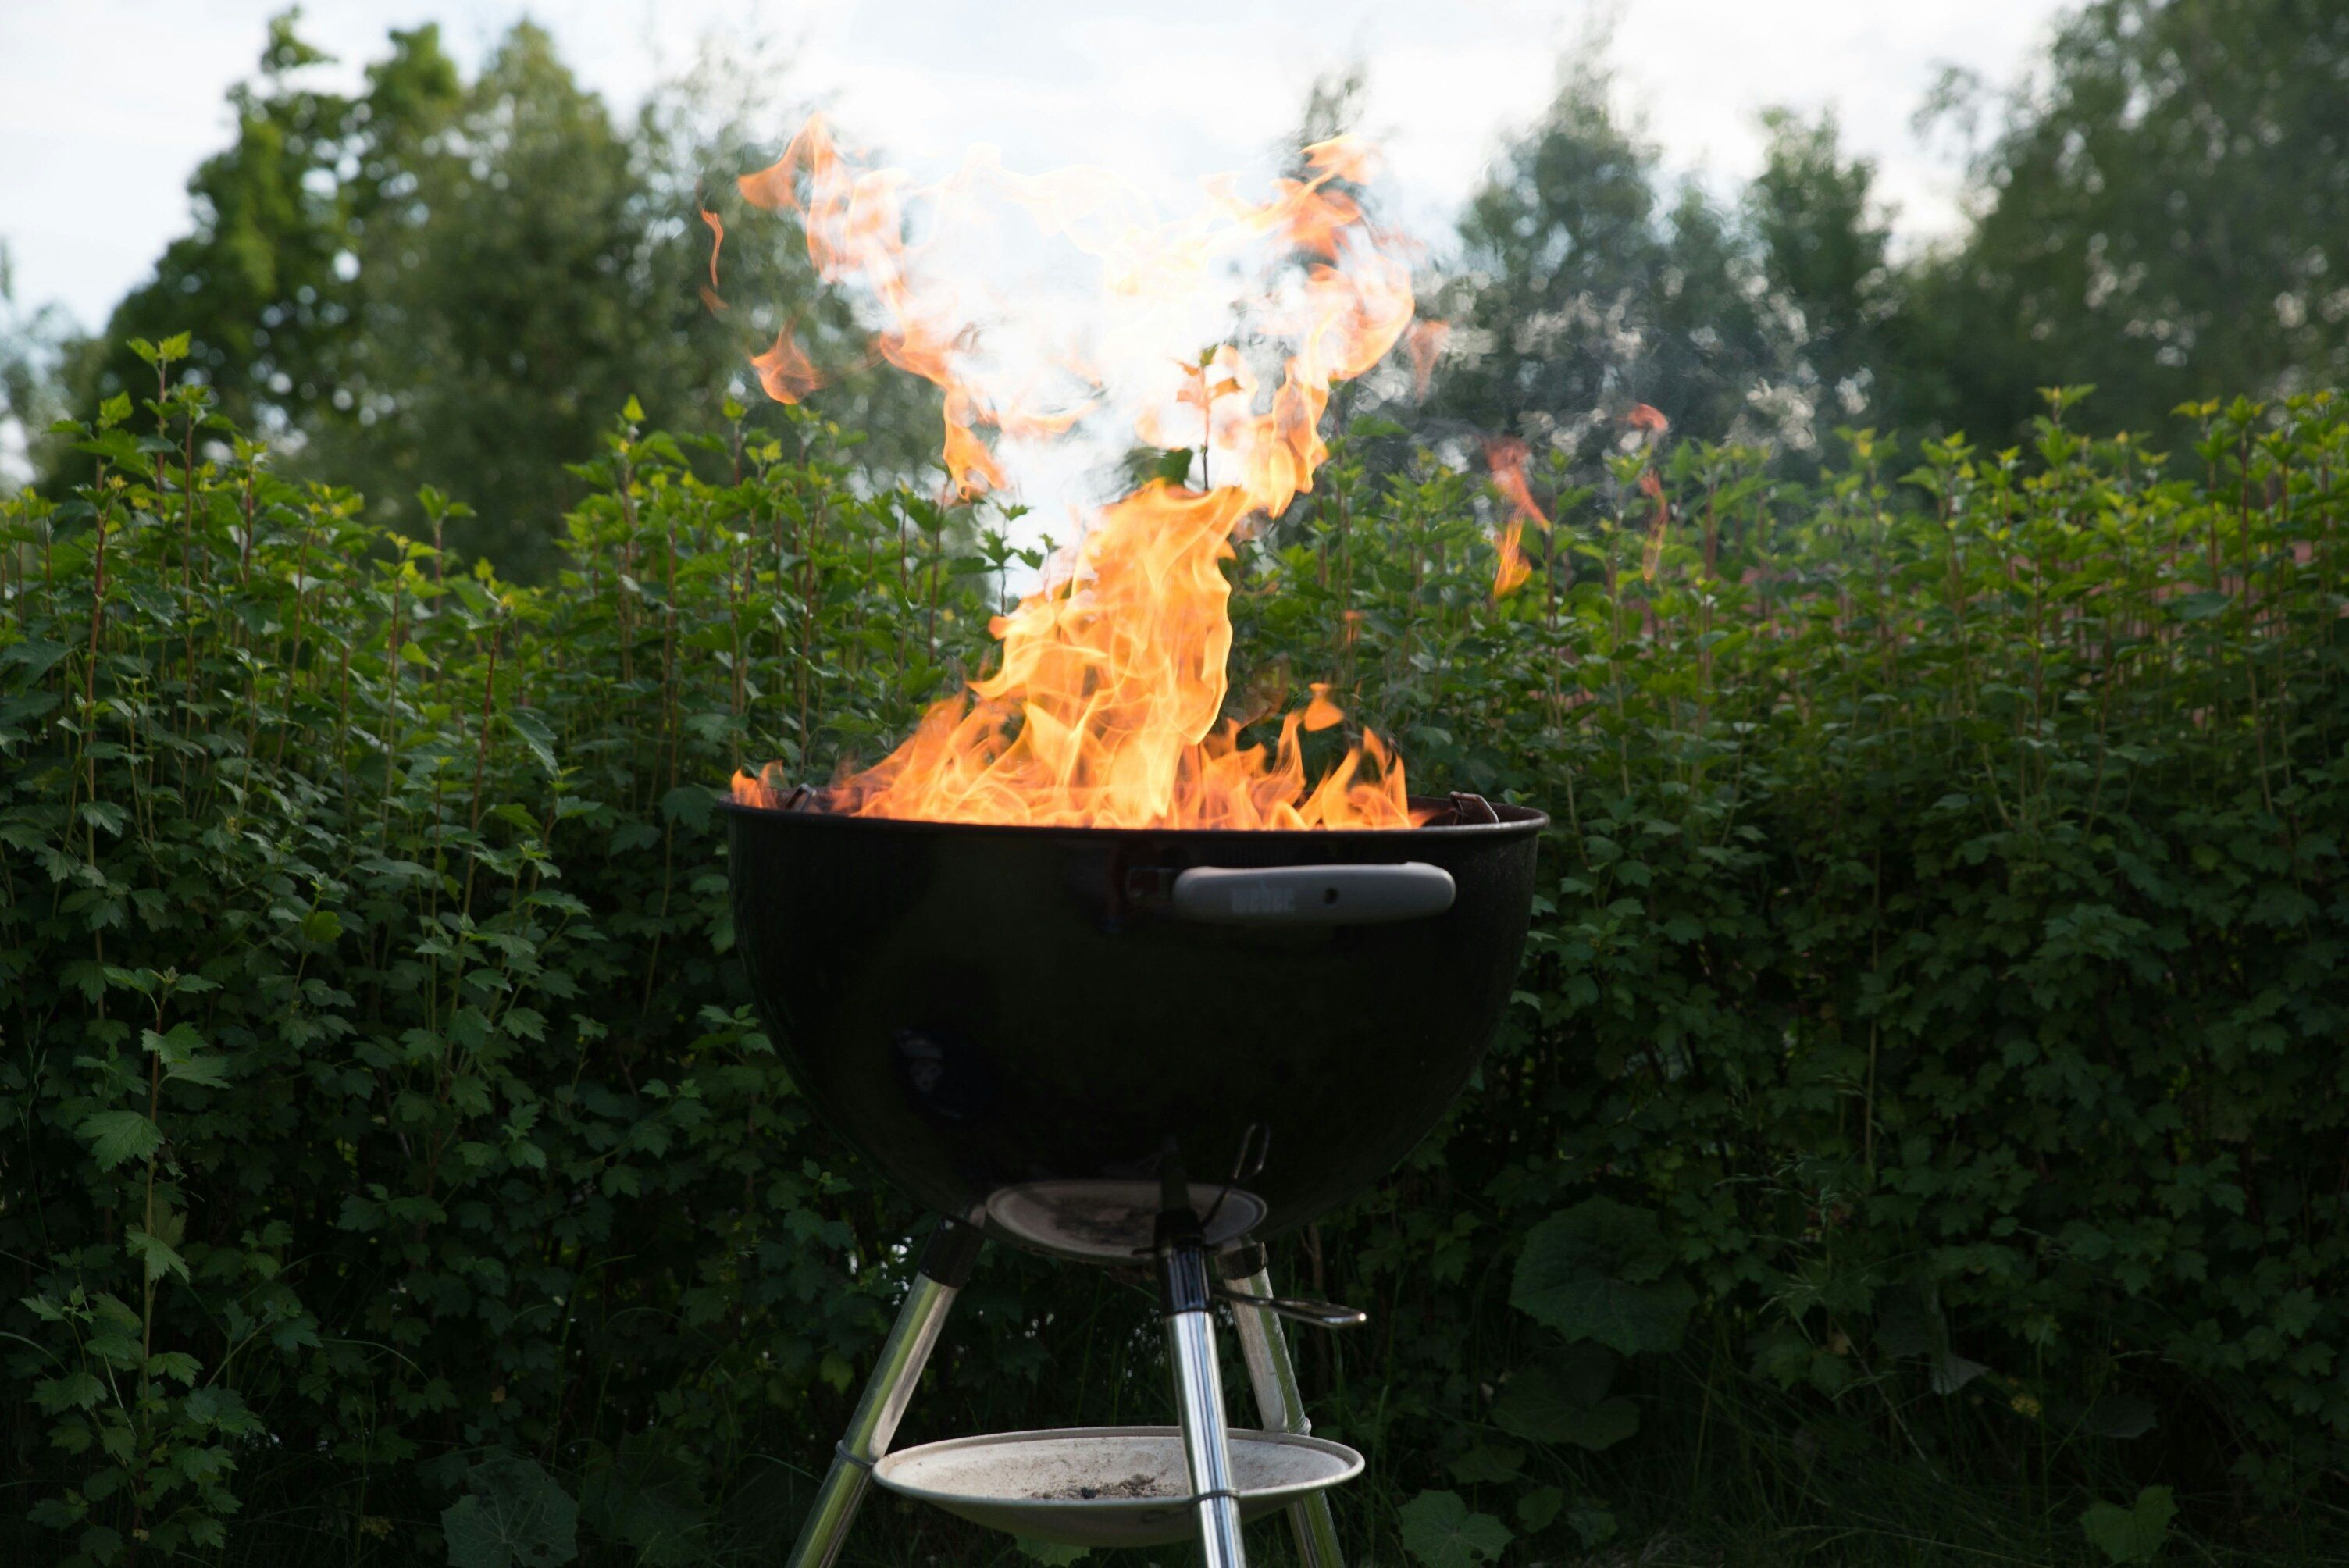 how to clean a blackstone grill after cooking